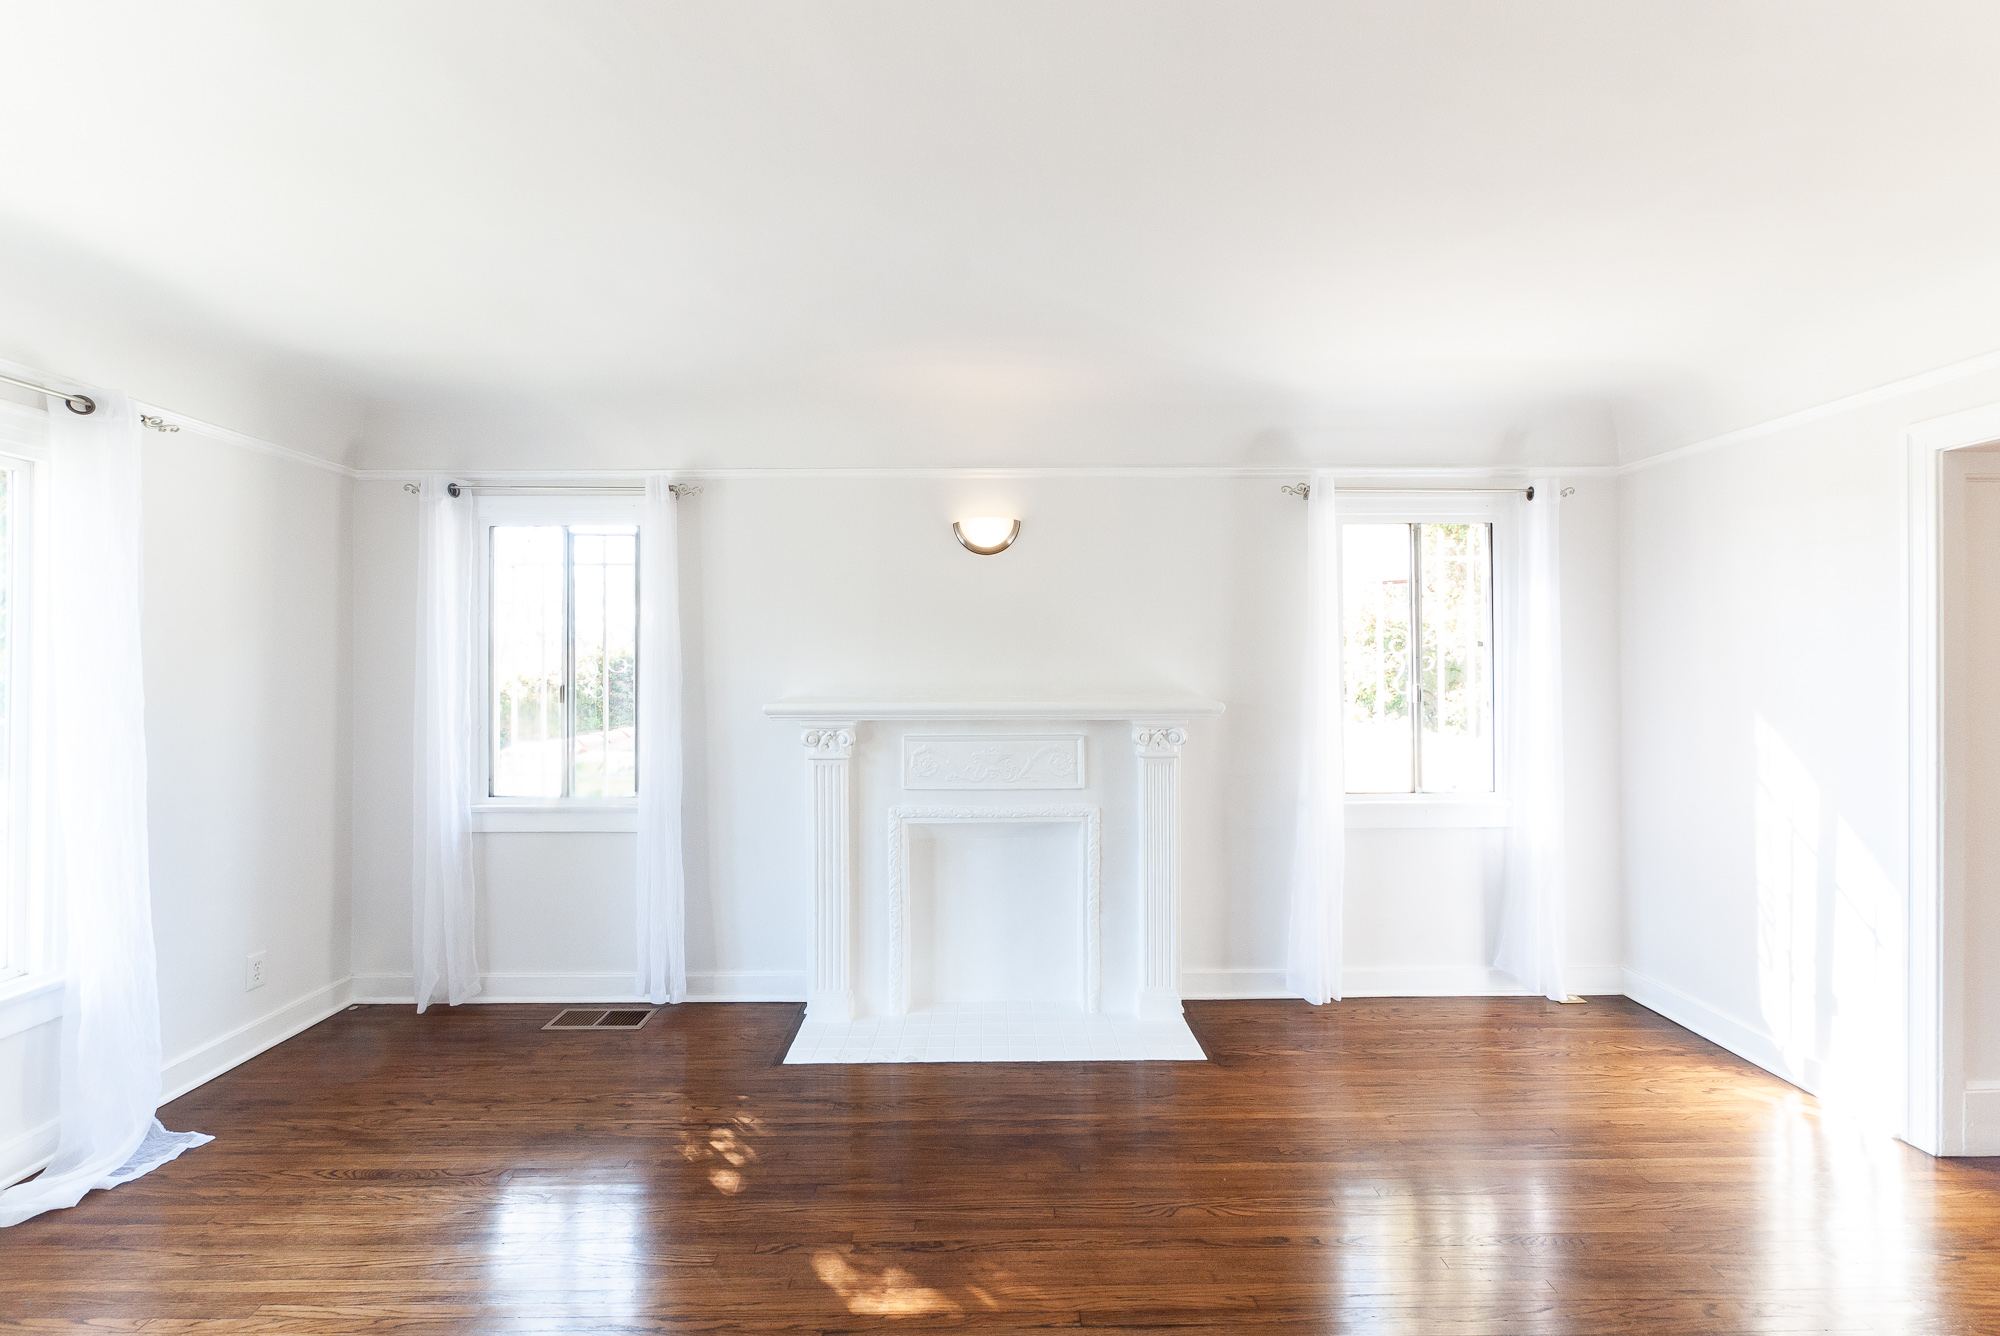 Adorable Renovated 2BR/ 1 BA 1920's Duplex w/ Central Air & Shared Outdoor Space!